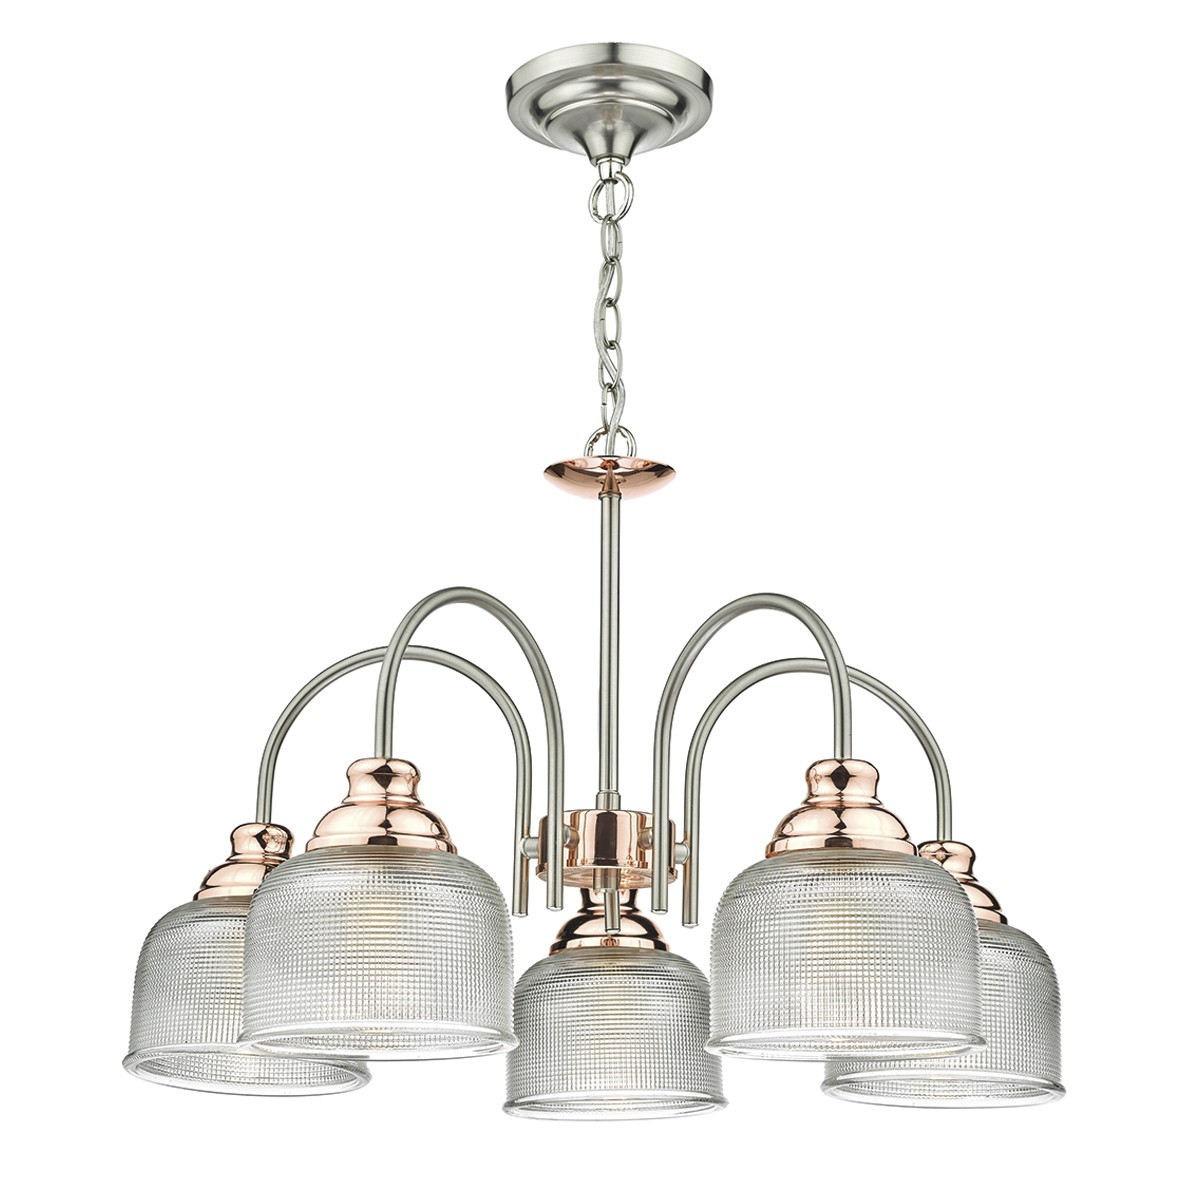 Akash Industrial Vintage 1 Light Geometric Pendants For Well Known Amazing Range Of Lighting For Every Room In The Home (View 16 of 25)